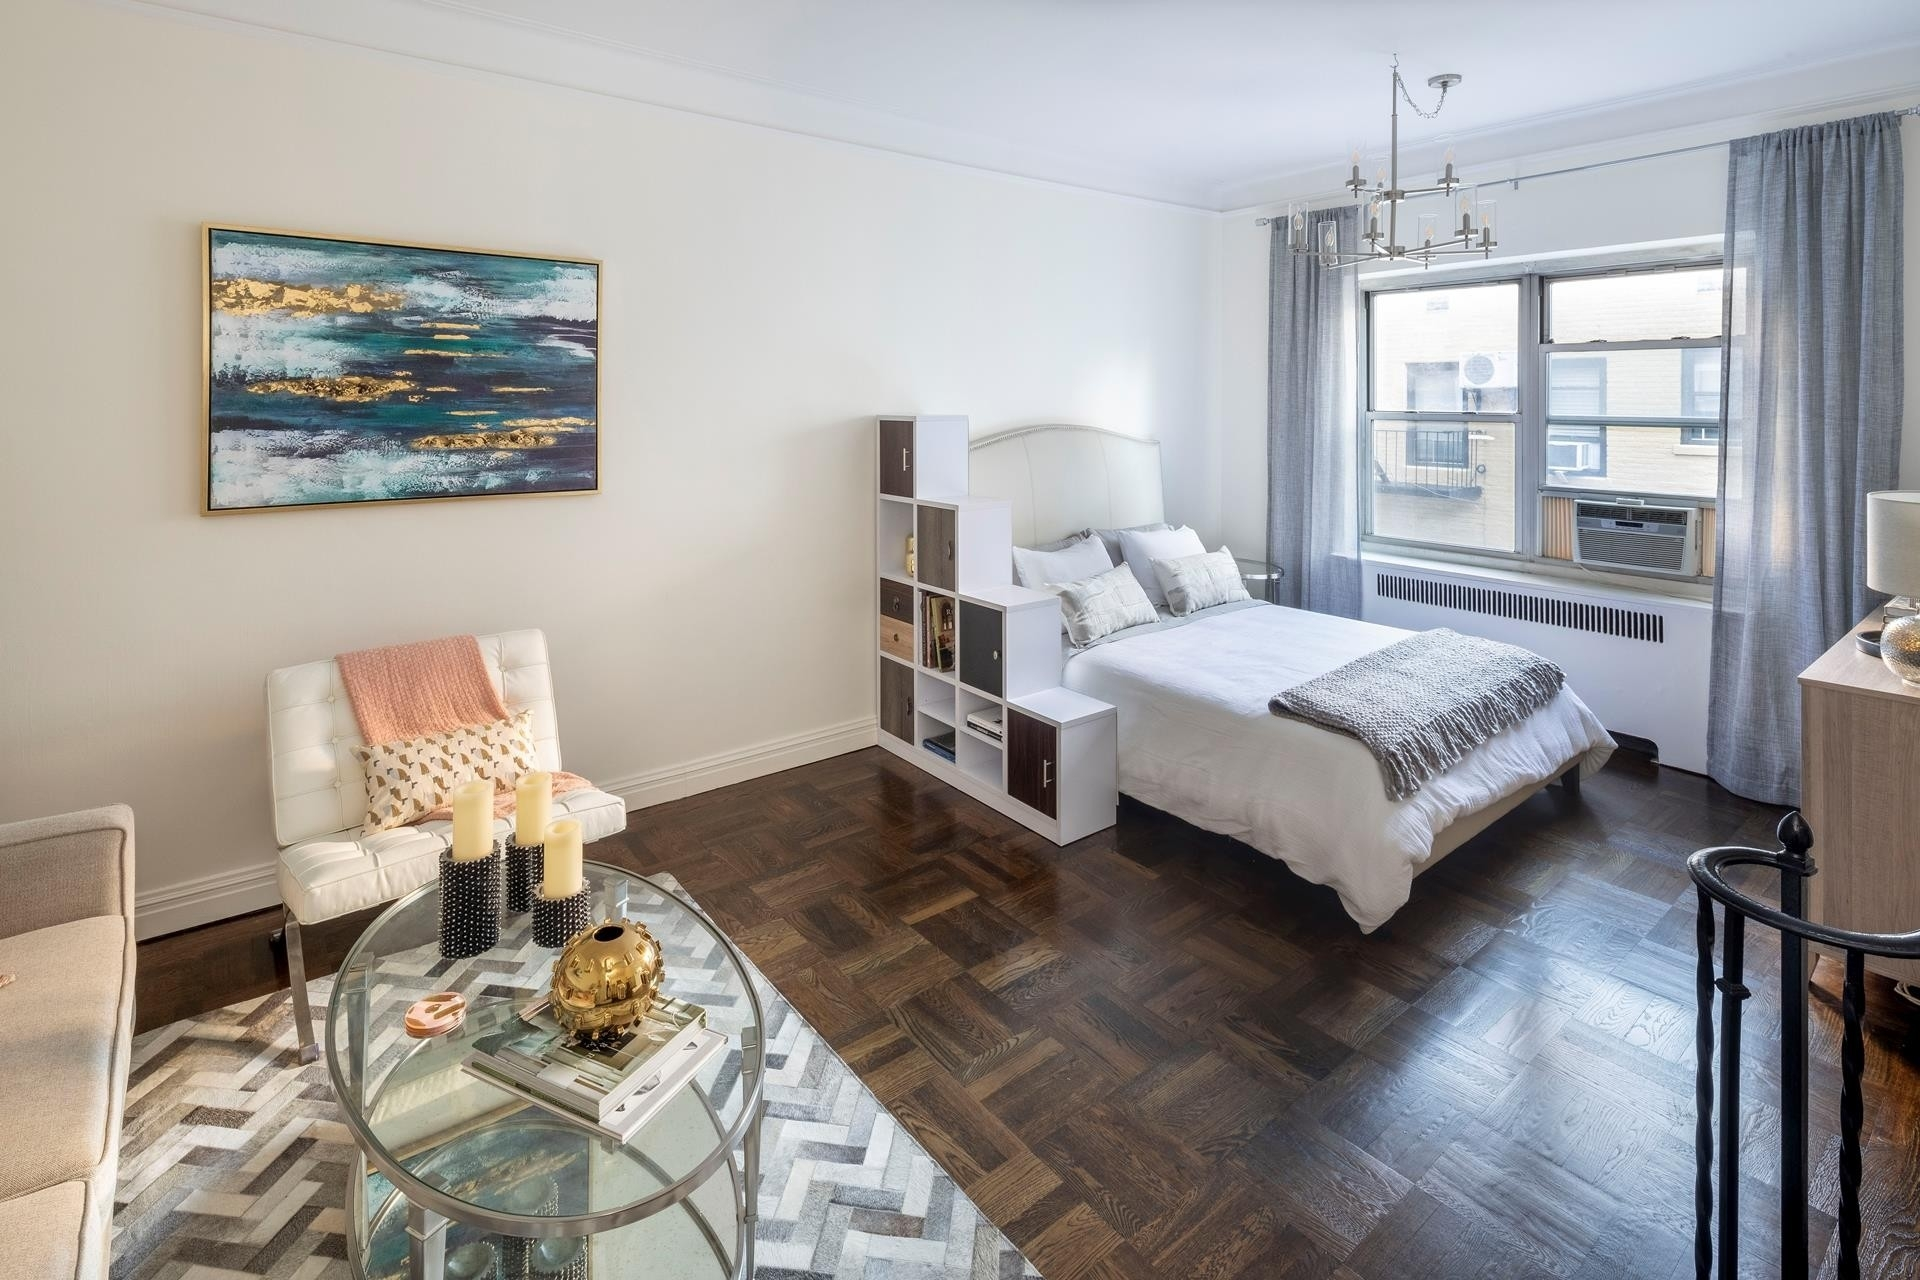 Property at 29 West 64th St, 6F Lincoln Square, New York, NY 10023